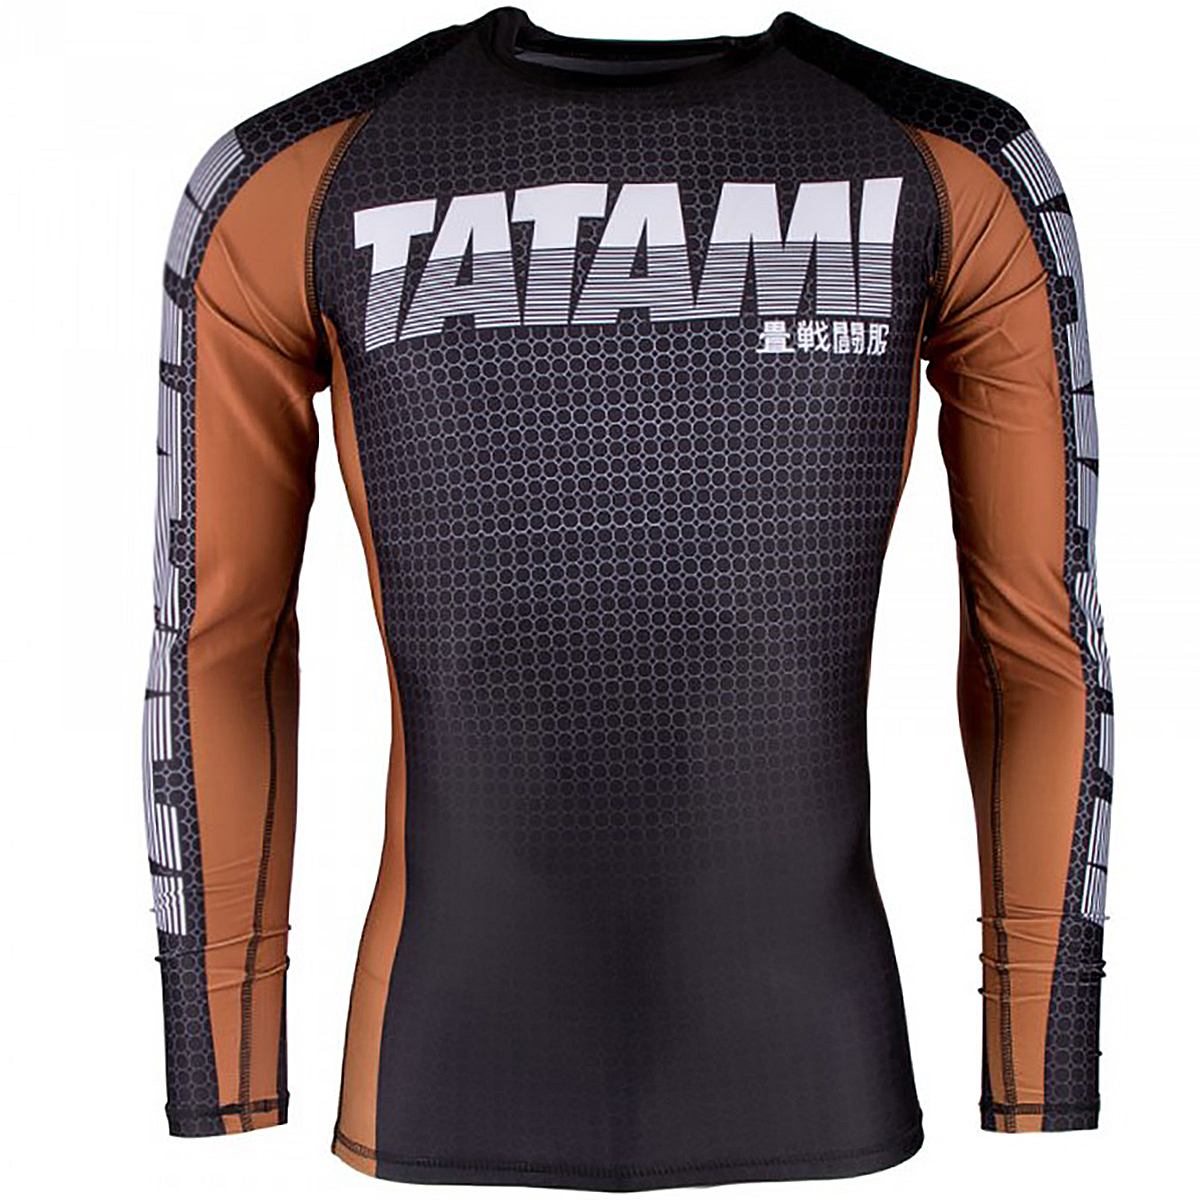 Tatami Fightwear 2017 IBJJF Rank Long Sleeve MMA Rashguard - Brown